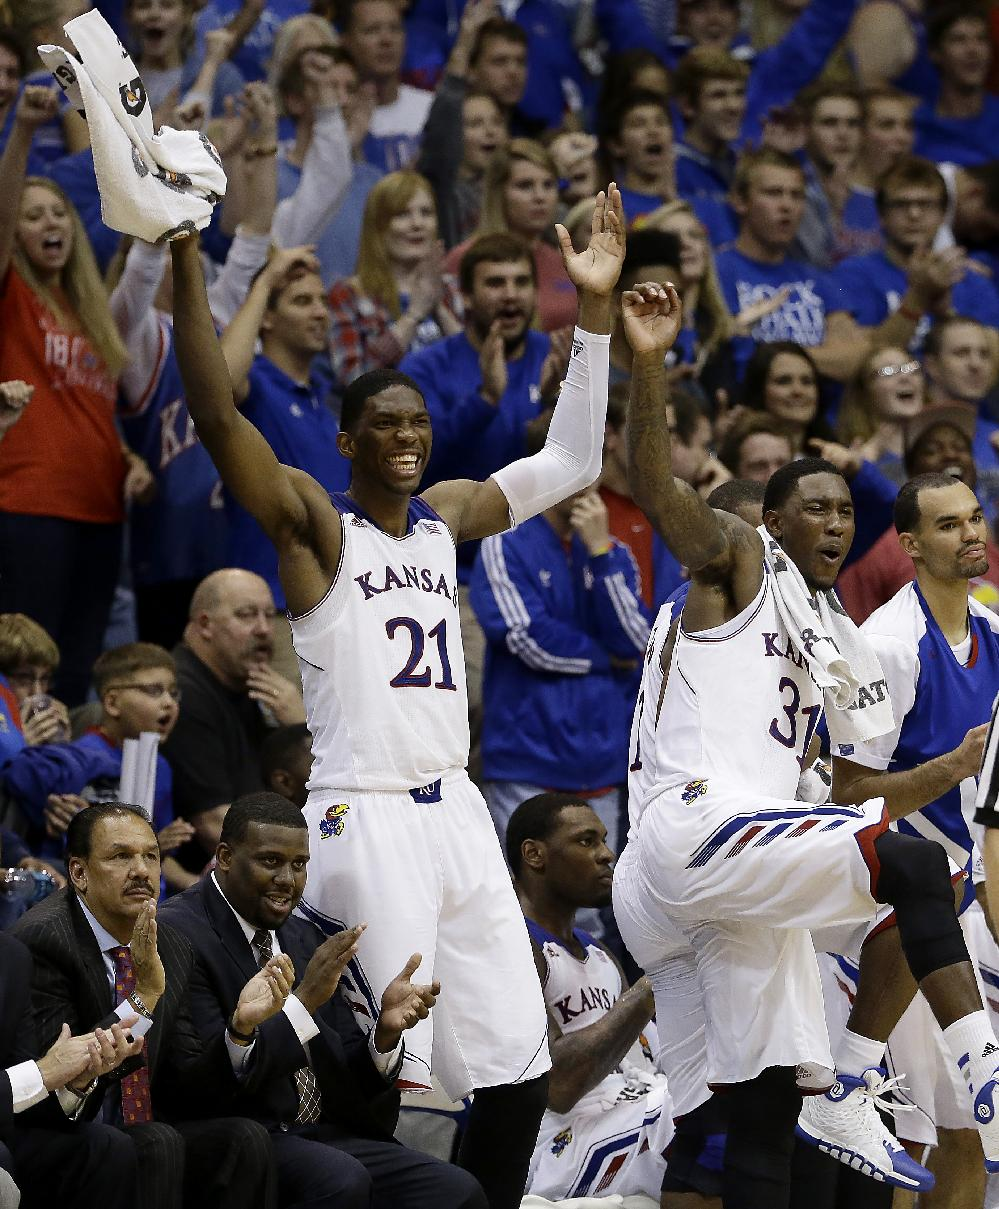 Kansas' Joel Embiid (21) and Jamari Traylor (31) celebrate a teammate's basket during the second half of an exhibition NCAA college basketball game against Fort Hays State University Tuesday, Nov. 5, 2013, in Lawrence, Kan. Kansas won the game 92-75